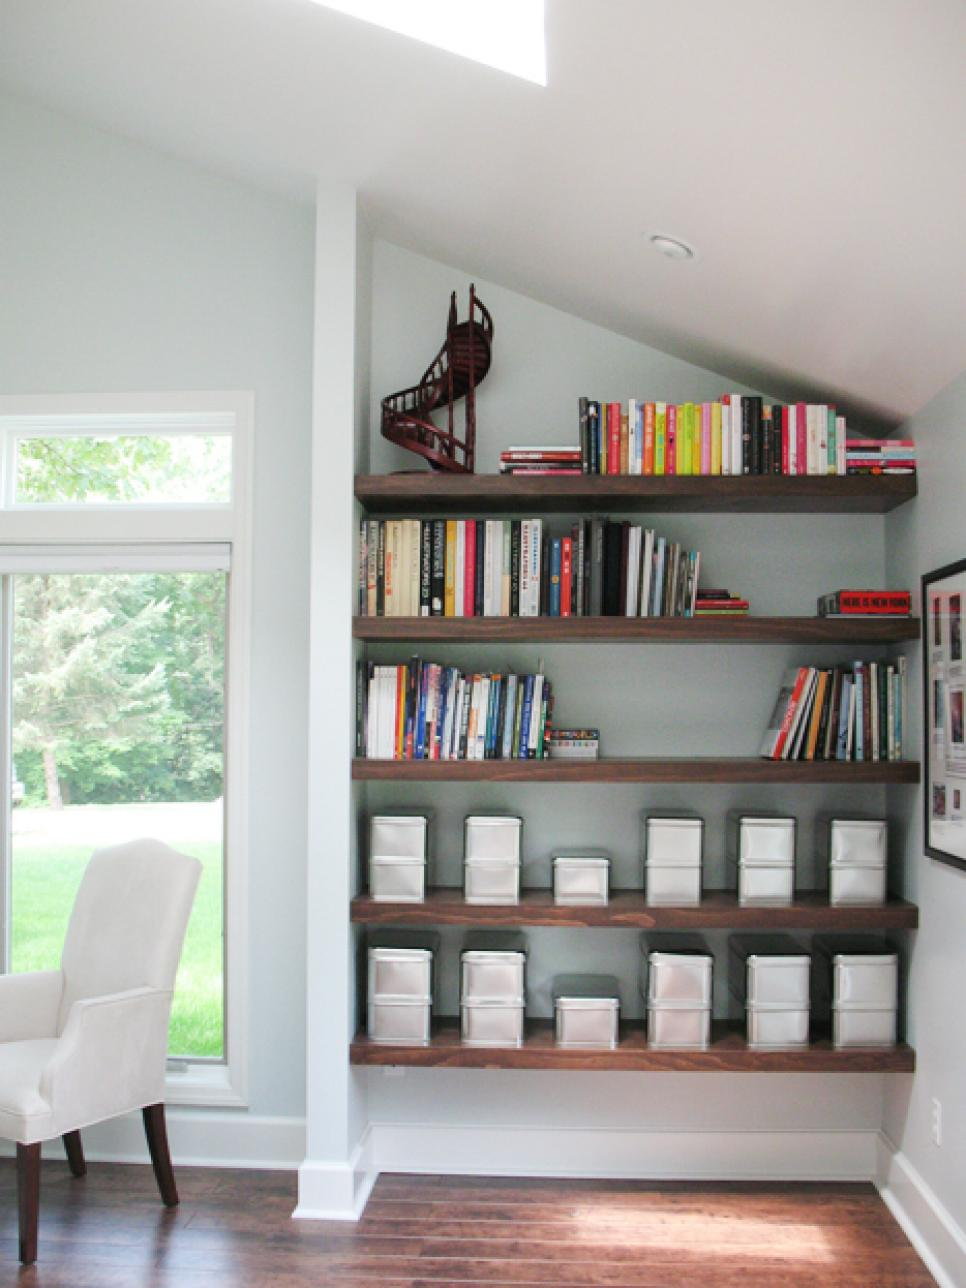 Utilize Spaces With Creative Shelves | HGTV